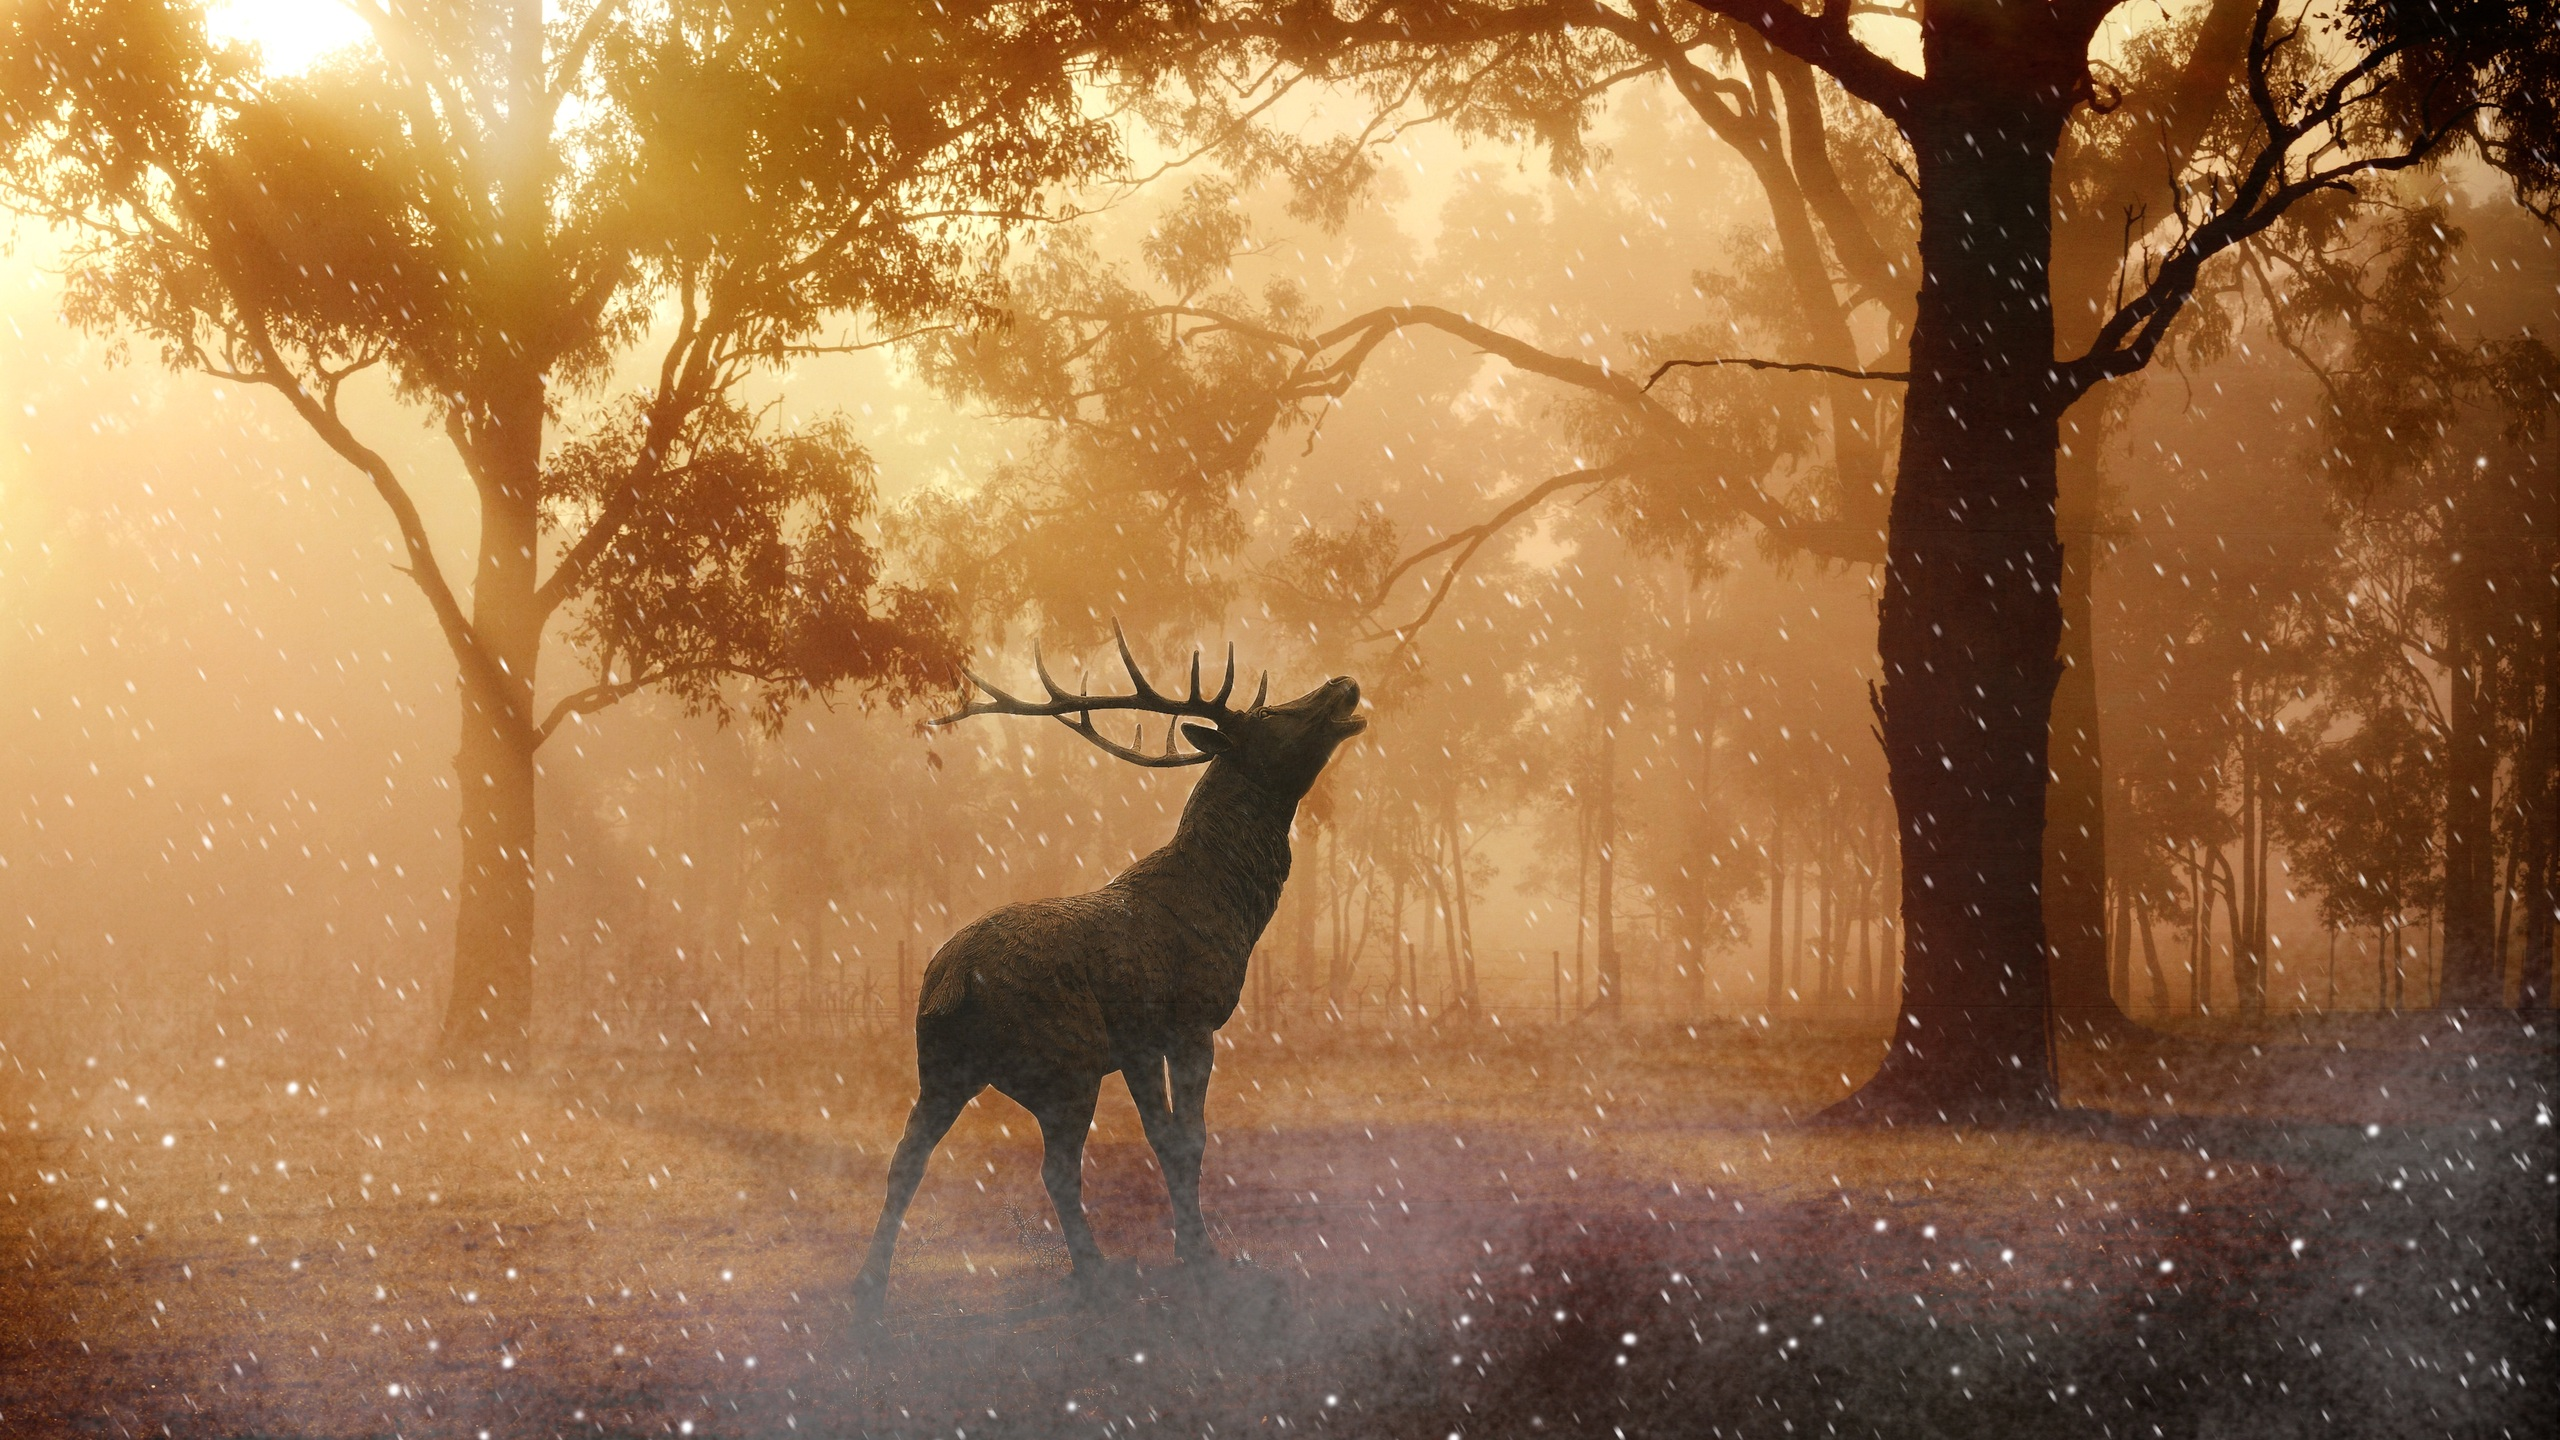 2560x1440 Deer Wild Nature Forest 4k 1440p Resolution Hd 4k Wallpapers Images Backgrounds Photos And Pictures